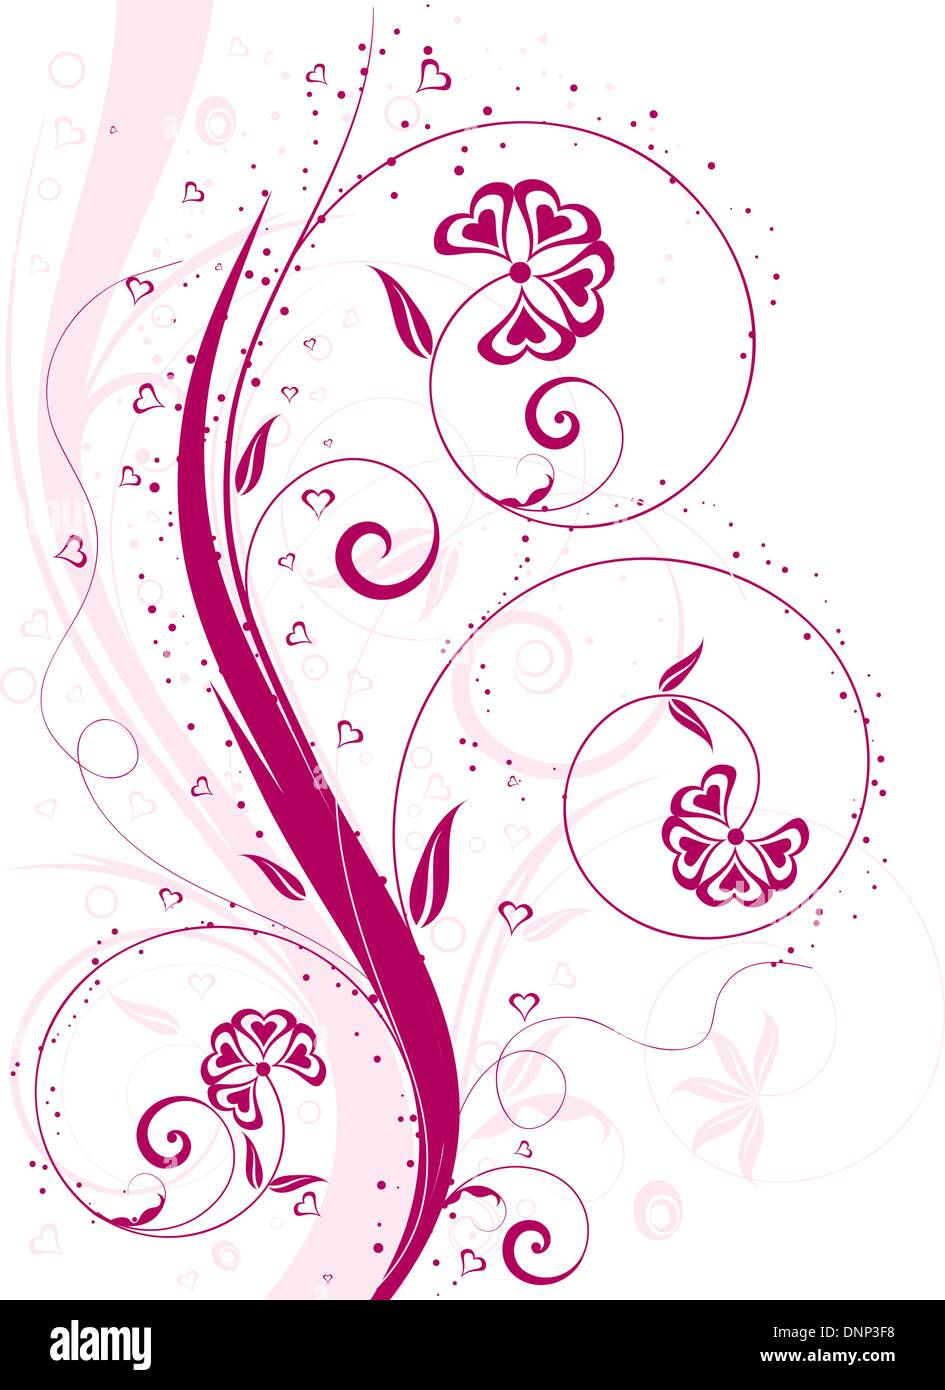 Valentines background with heart shaped flowers - Stock Image